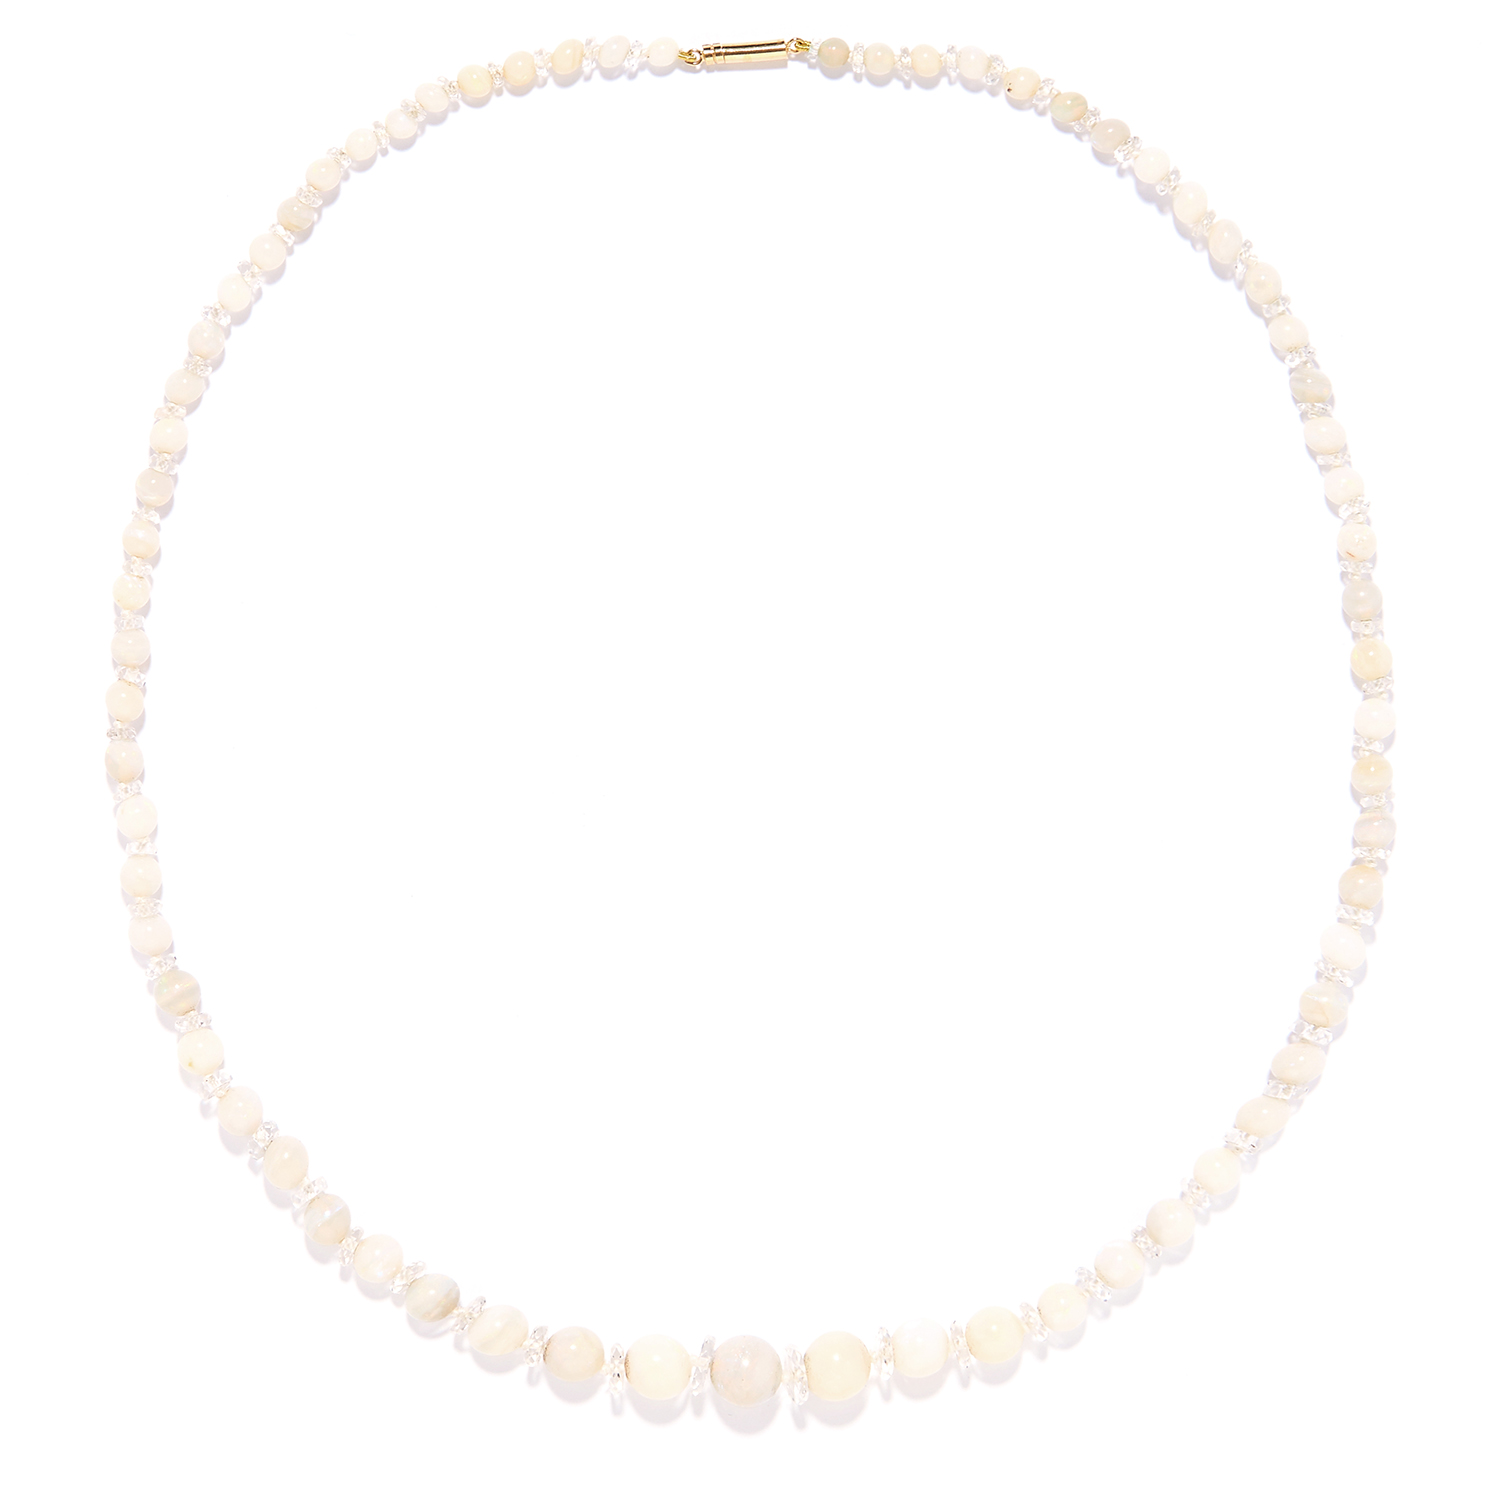 Los 133 - OPAL BEAD AND ROCK CRYSTAL NECKLACE comprising of a single row of opal beads and faceted rock